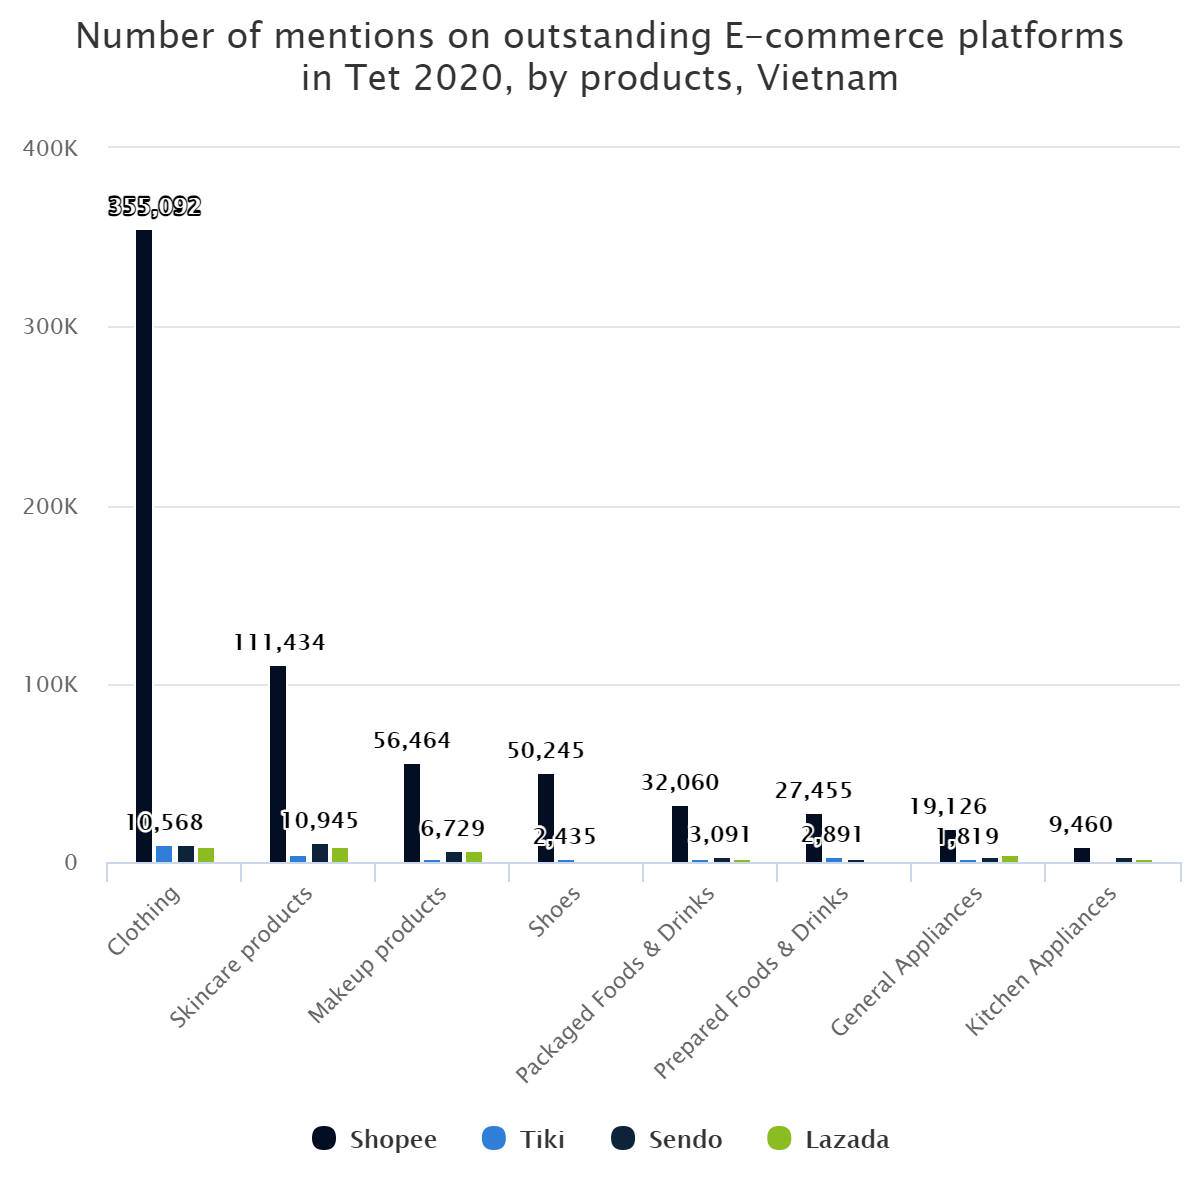 Number of mentions on outstanding E-commerce platforms in Tet 2020, by products, Vietnam